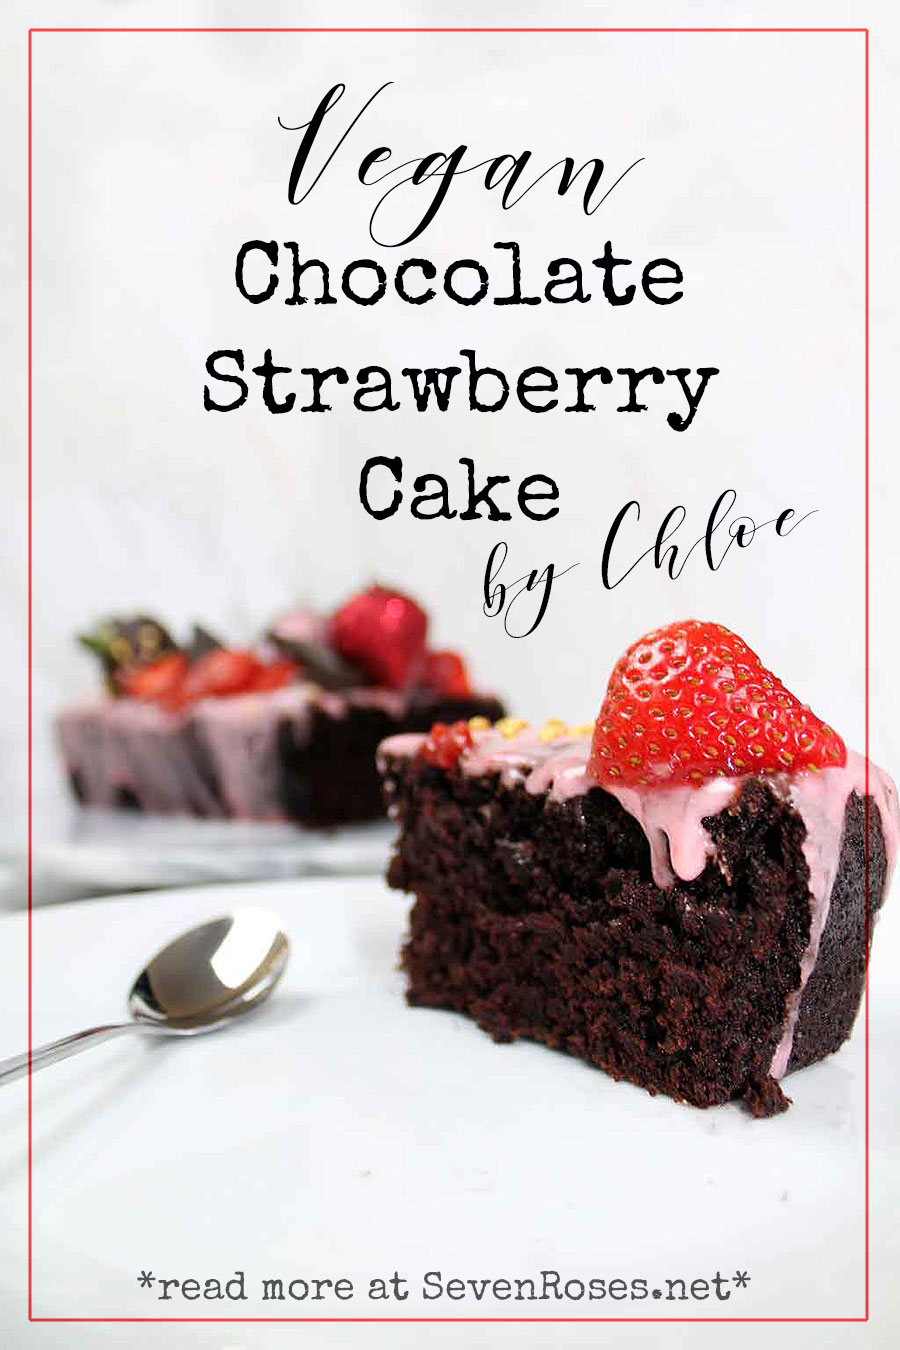 Chocolate Strawberry Cake by Chloe